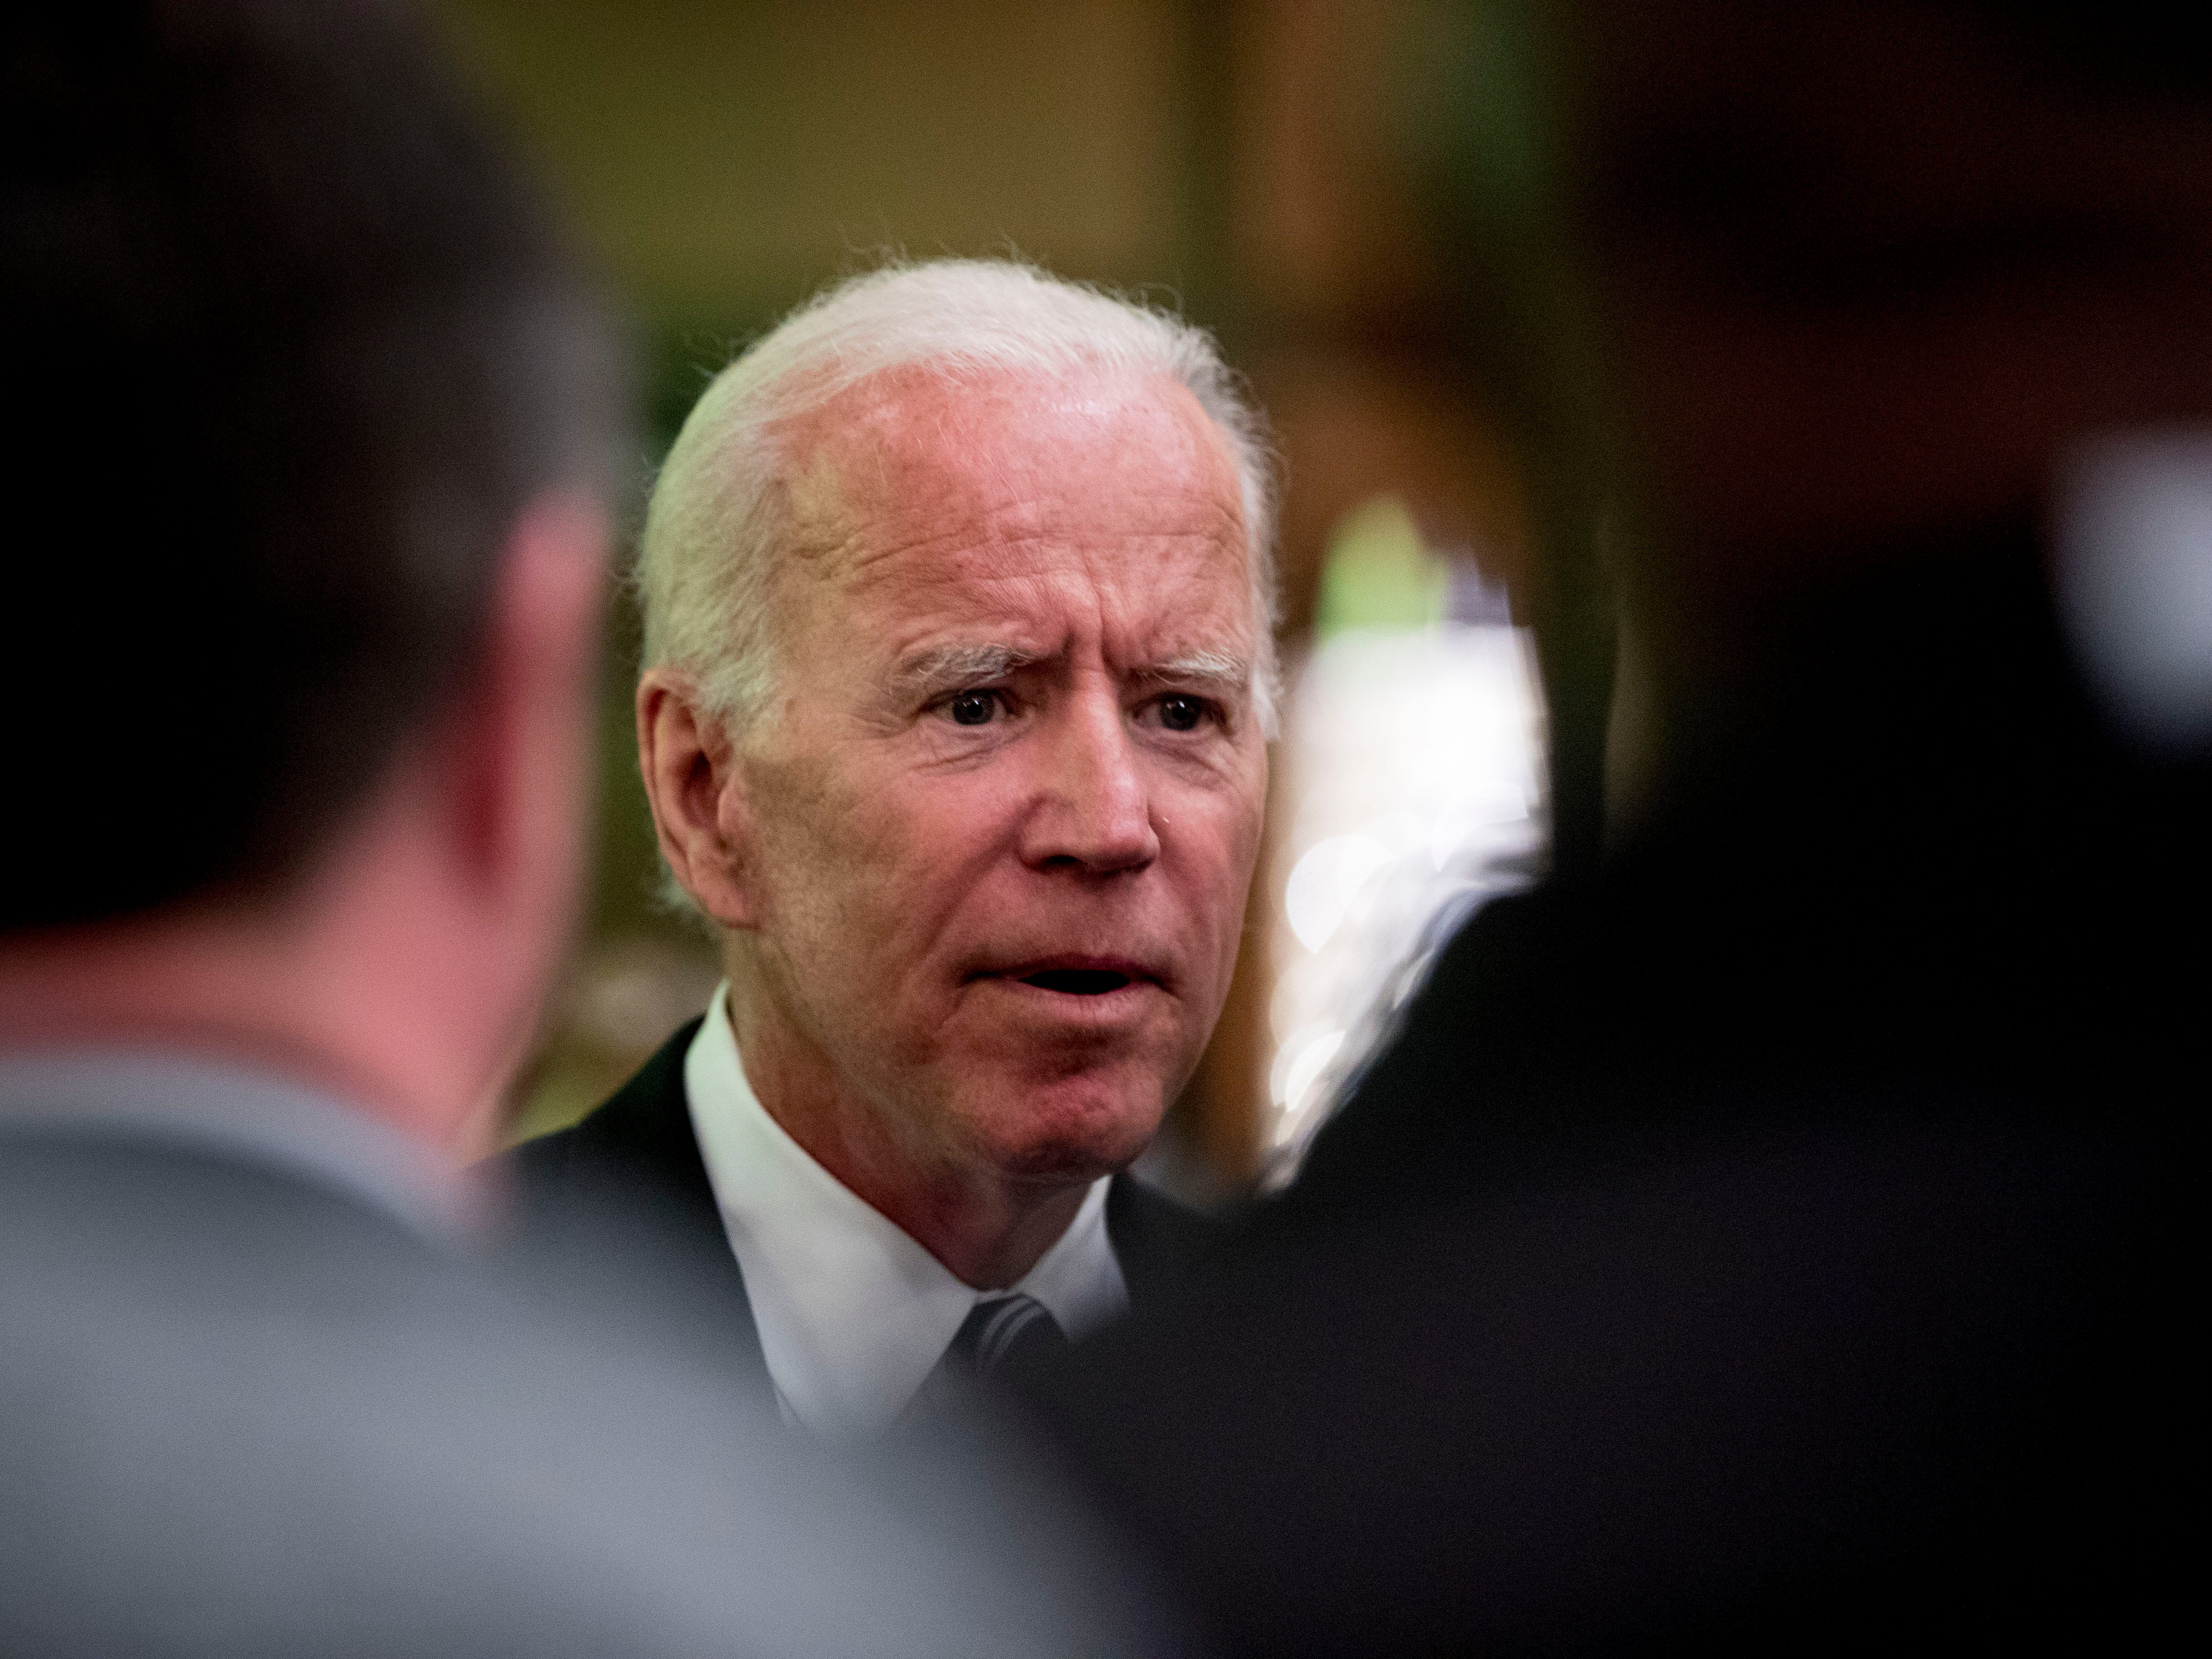 Welcome to the race, Joe: Your party has left you, and millions of voters, behind | Cupp